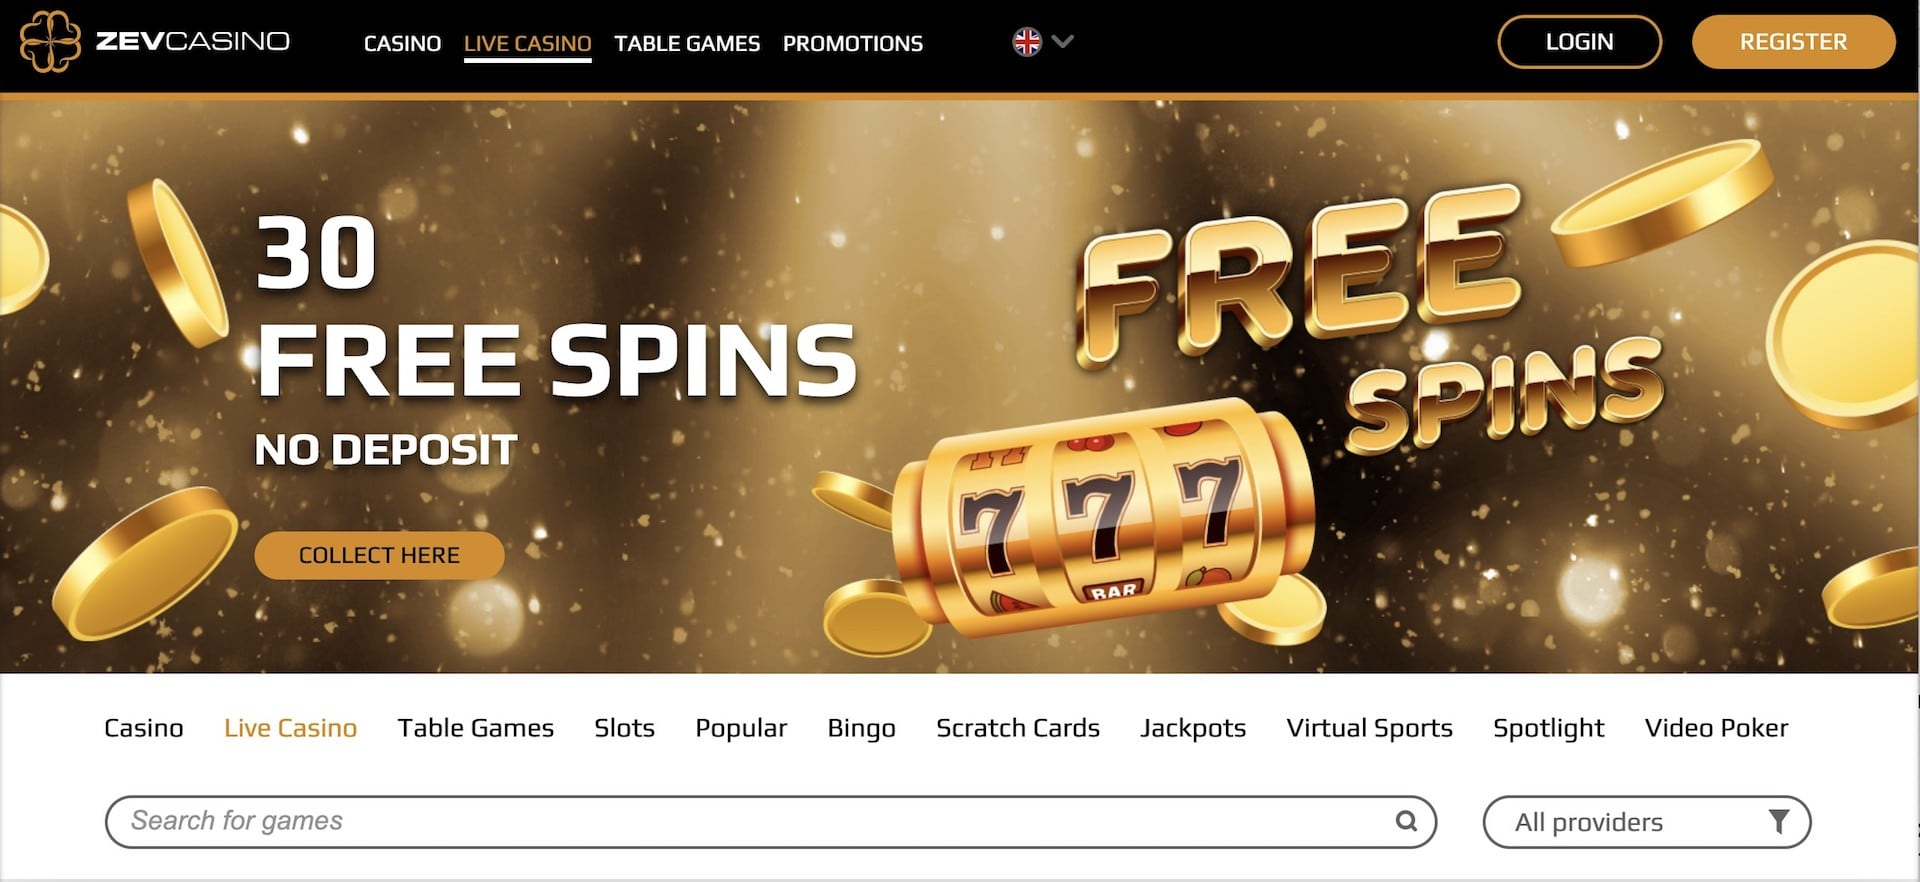 Read our Zev Casino Review for Promo Codes and More